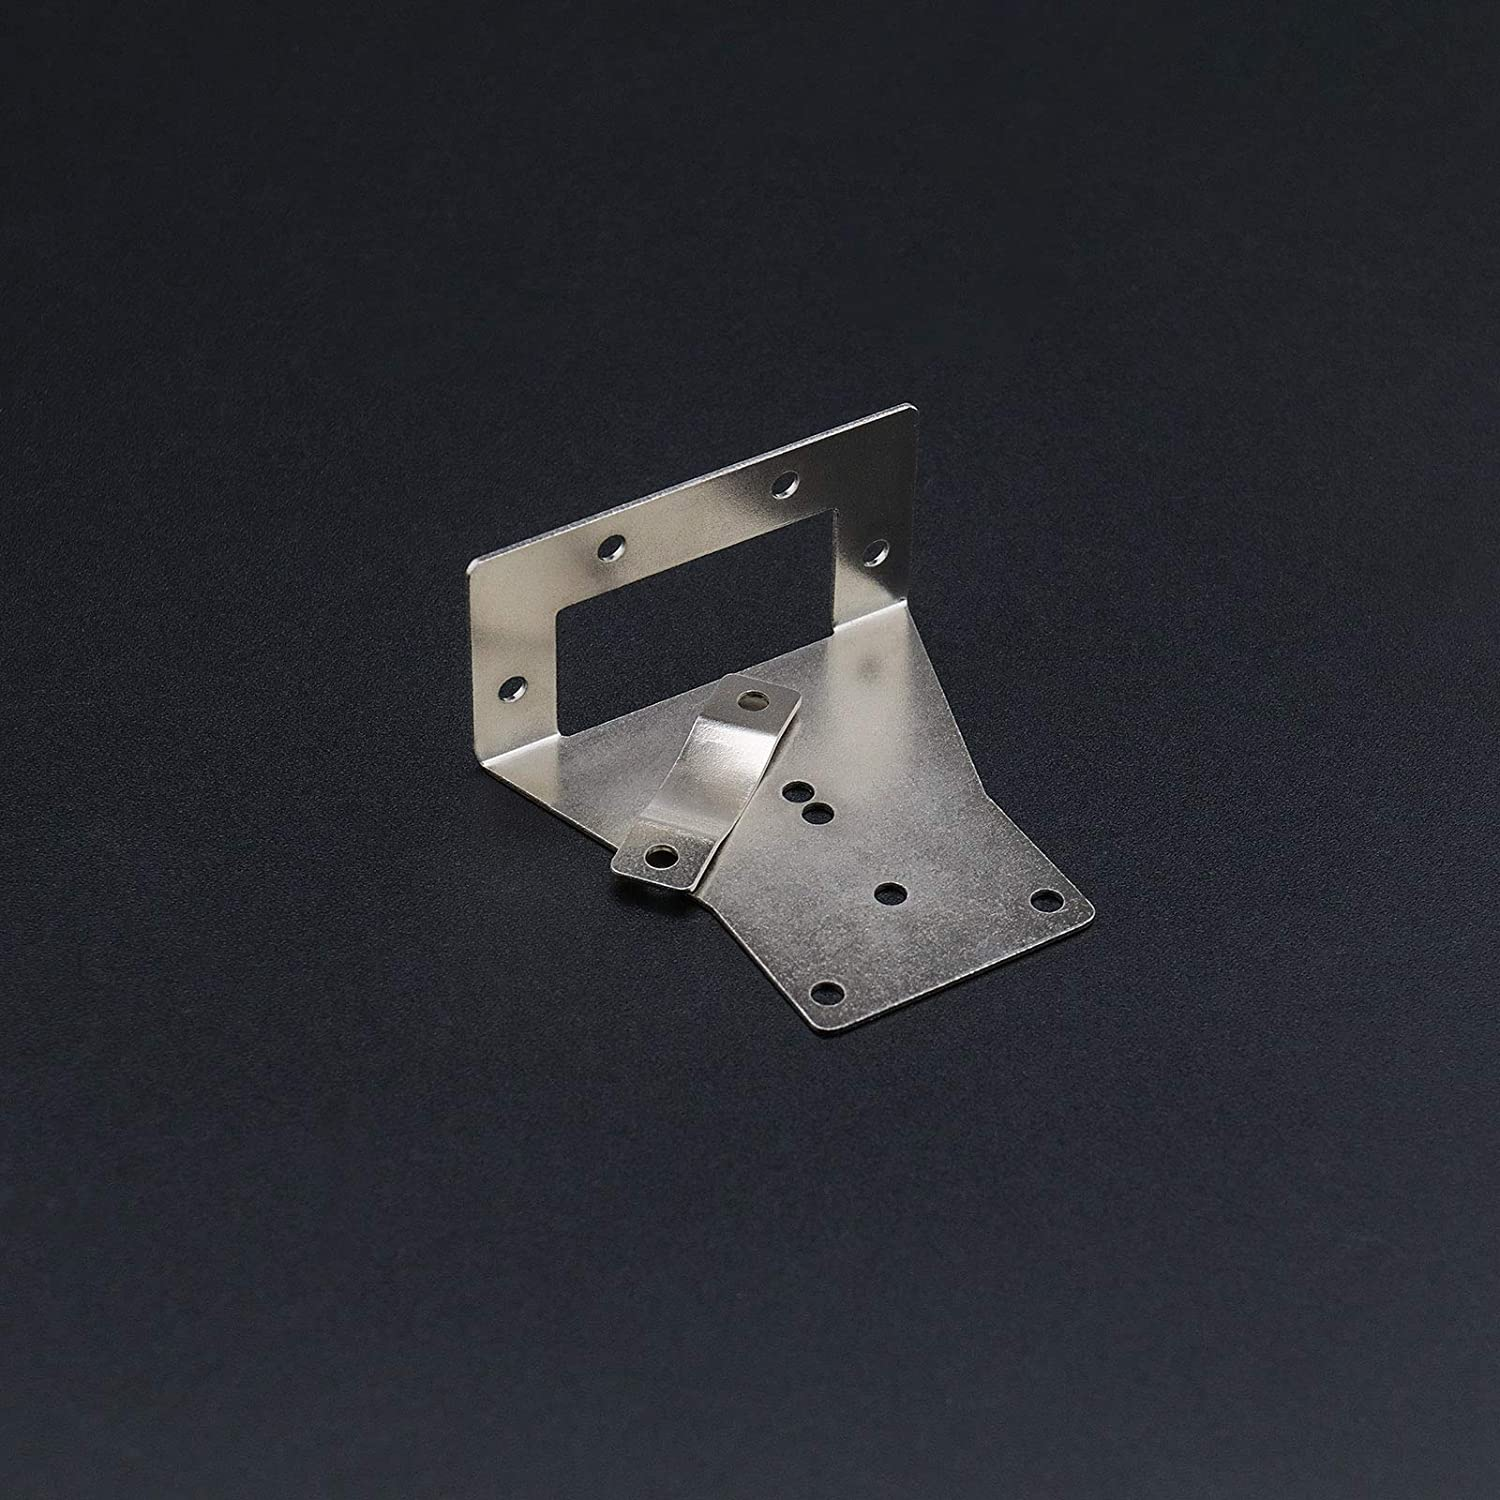 Flush Panel Mounting Fixed Bracket Connector Mount Power Connector Stand Fit For SMH Anderson 50A Plug With Mounting Screws